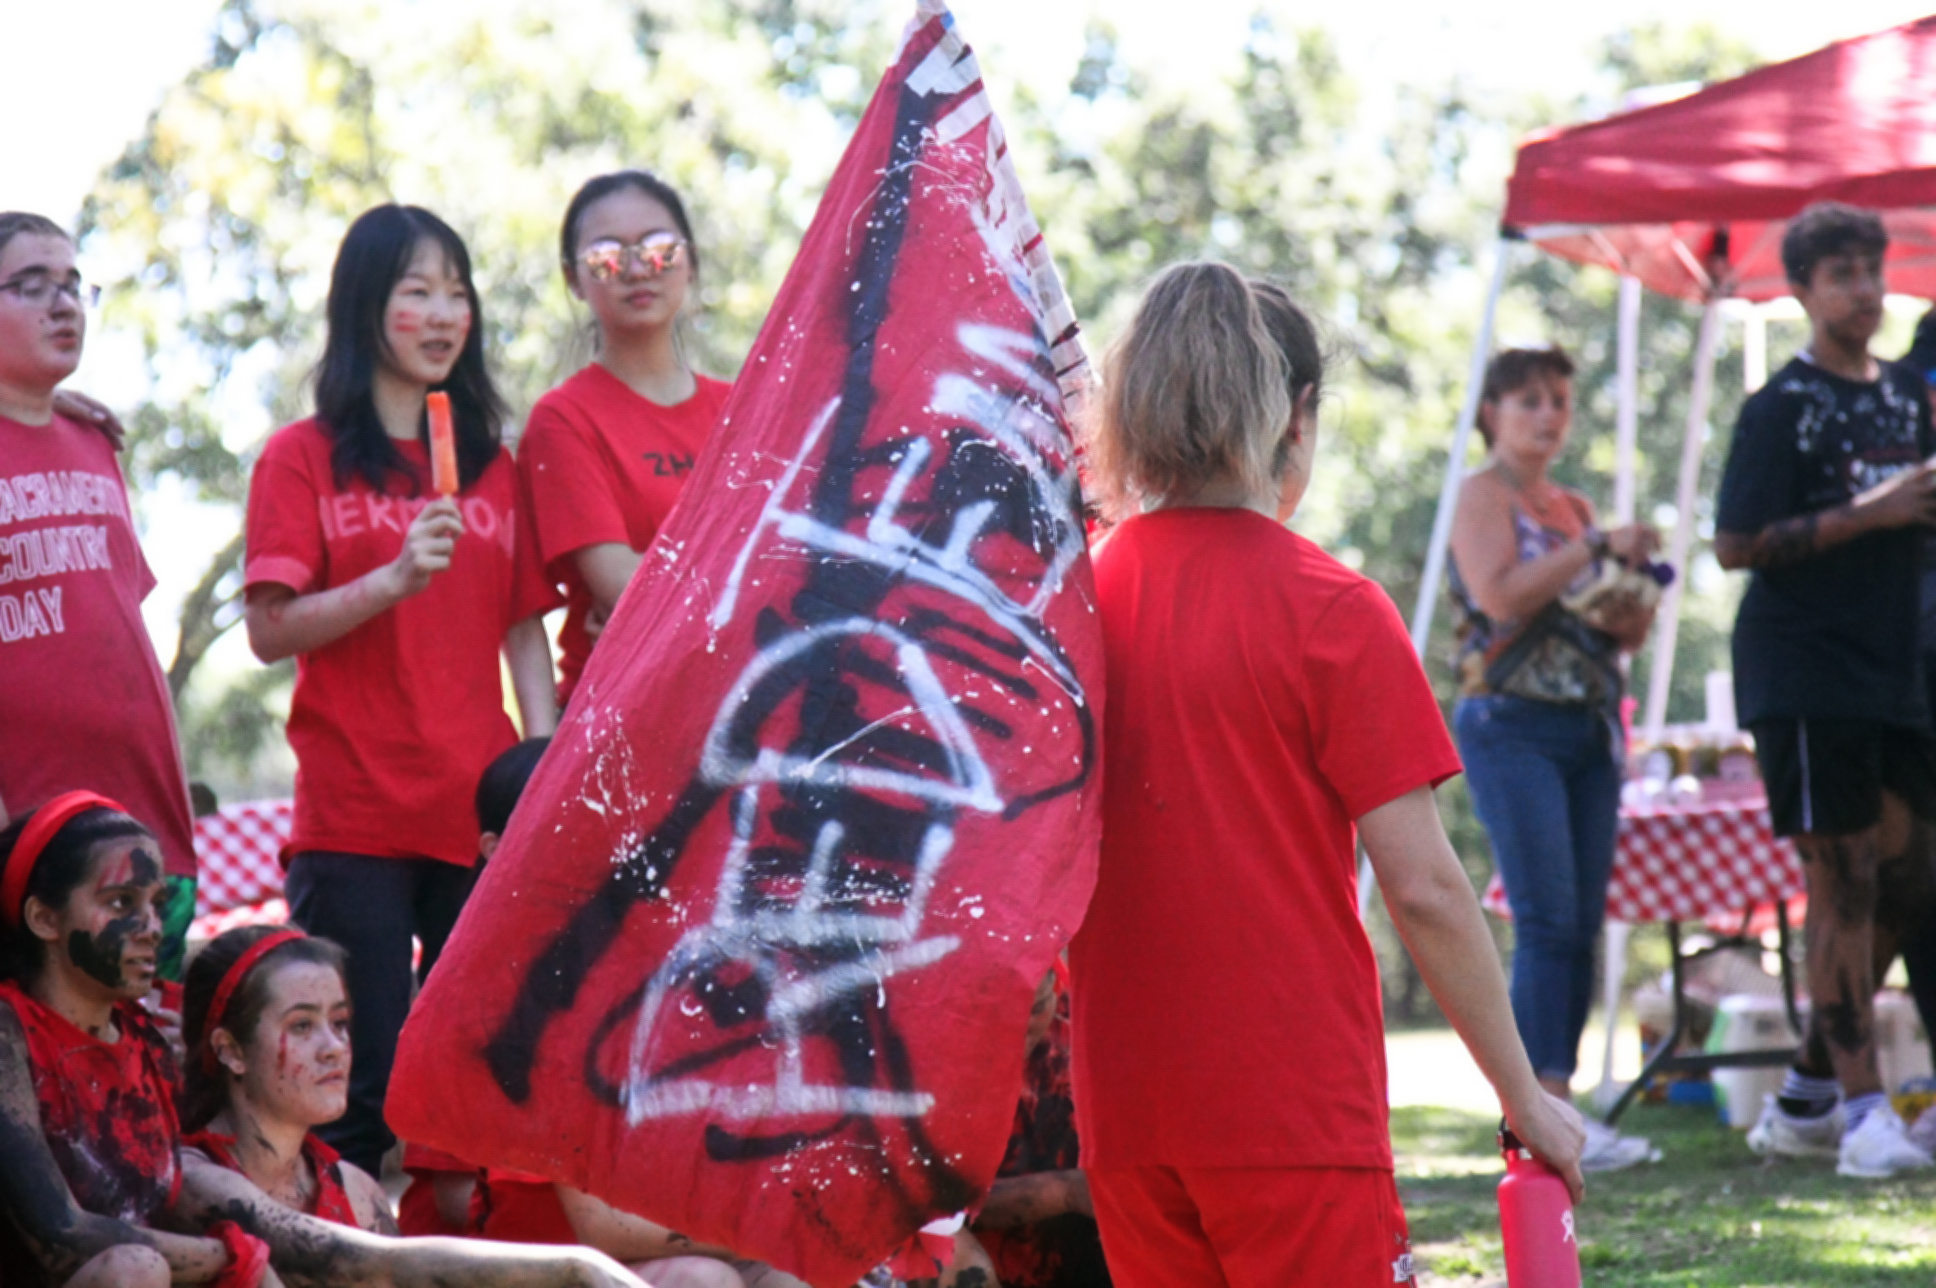 Junior Allie Bogetich carries the Red Team's flag. (Photo by Shimin Zhang)